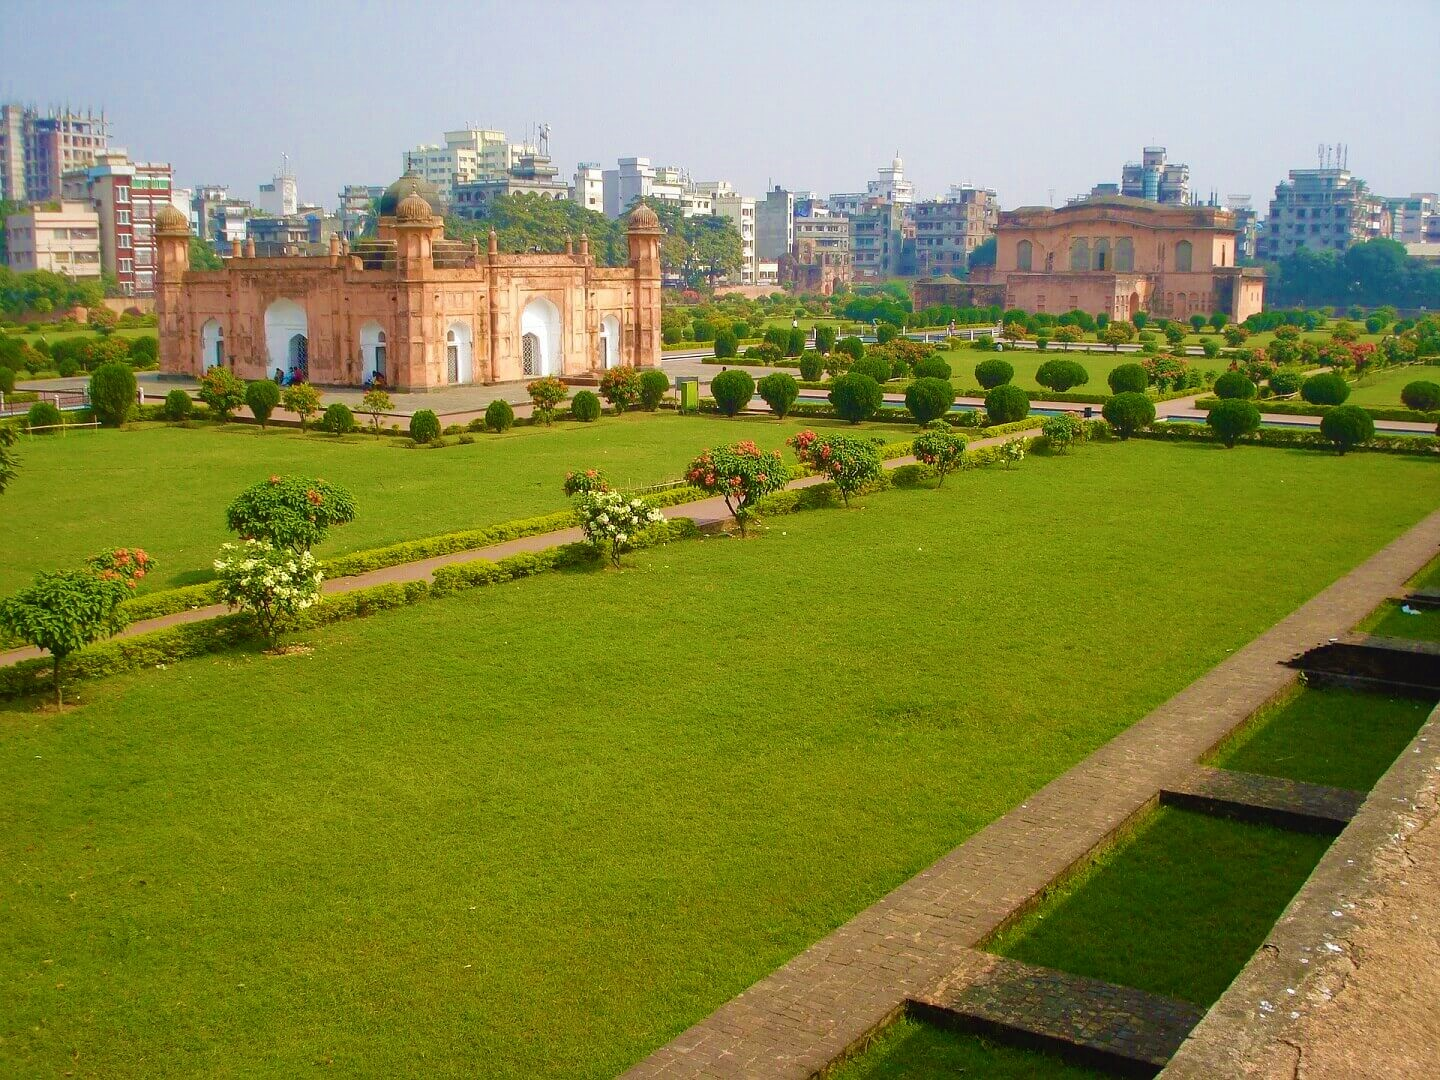 A side view of the historical Lalbagh Fort in Old Dhaka